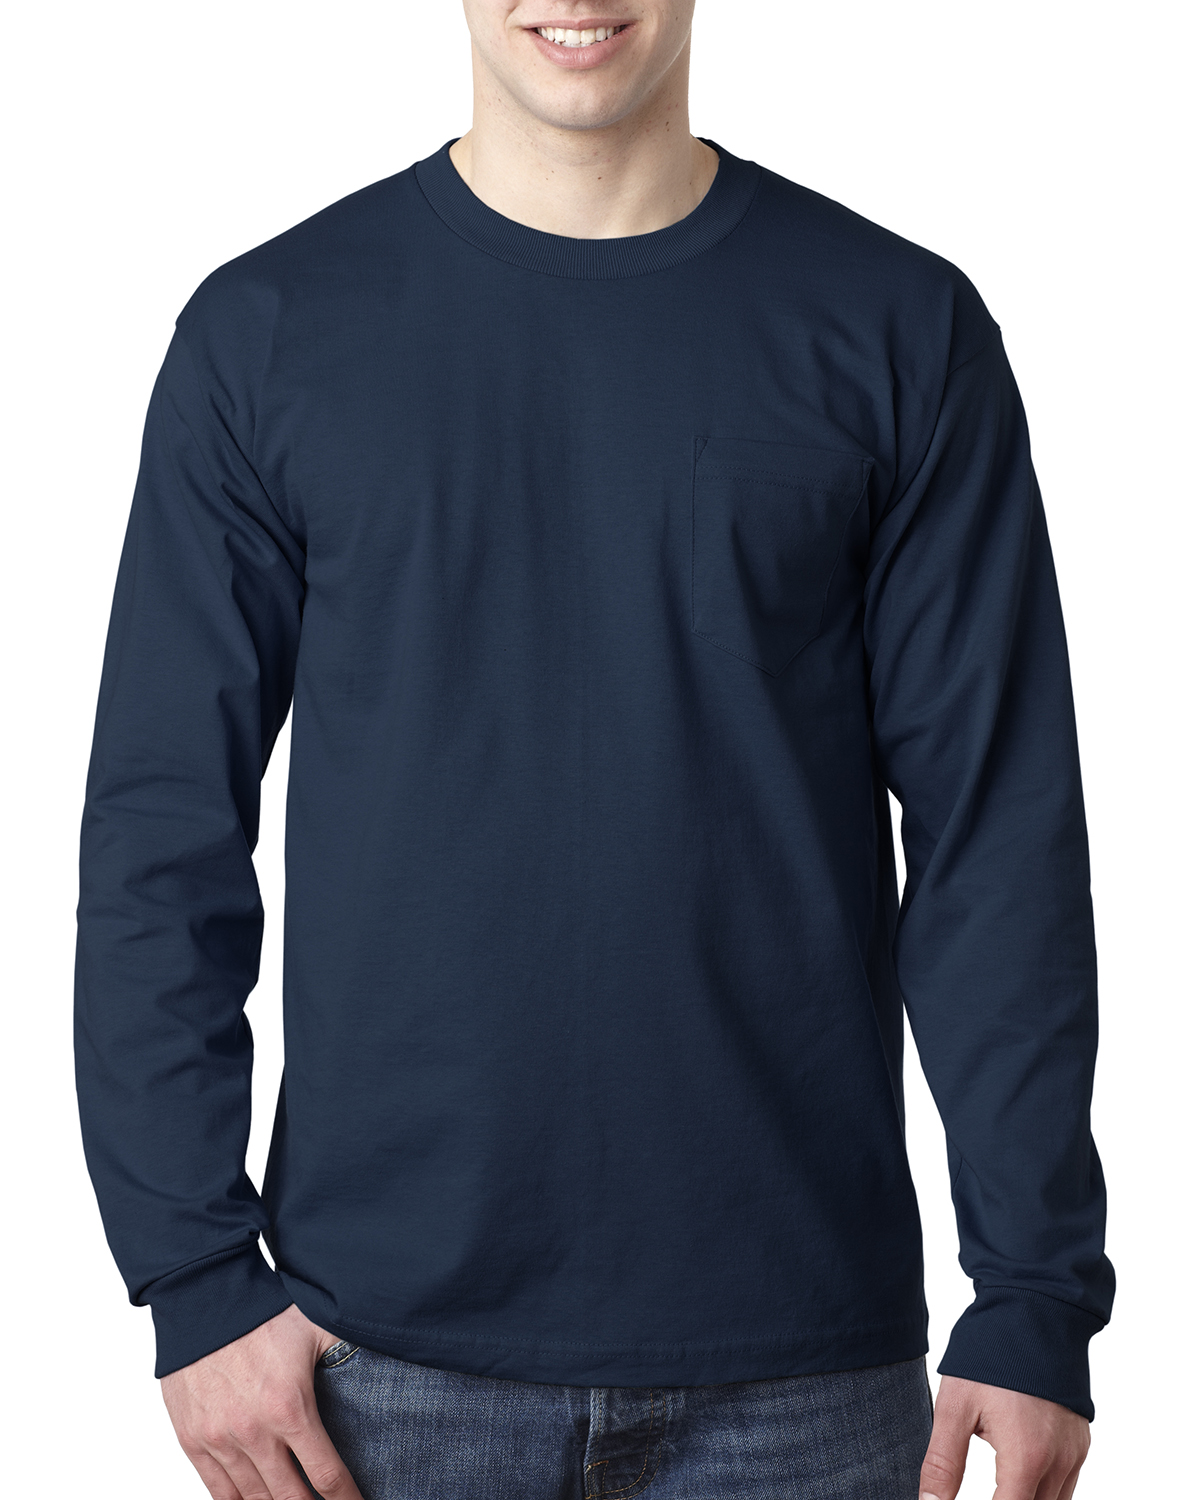 Bayside 8100 Long Sleeve T-Shirt with a Pocket